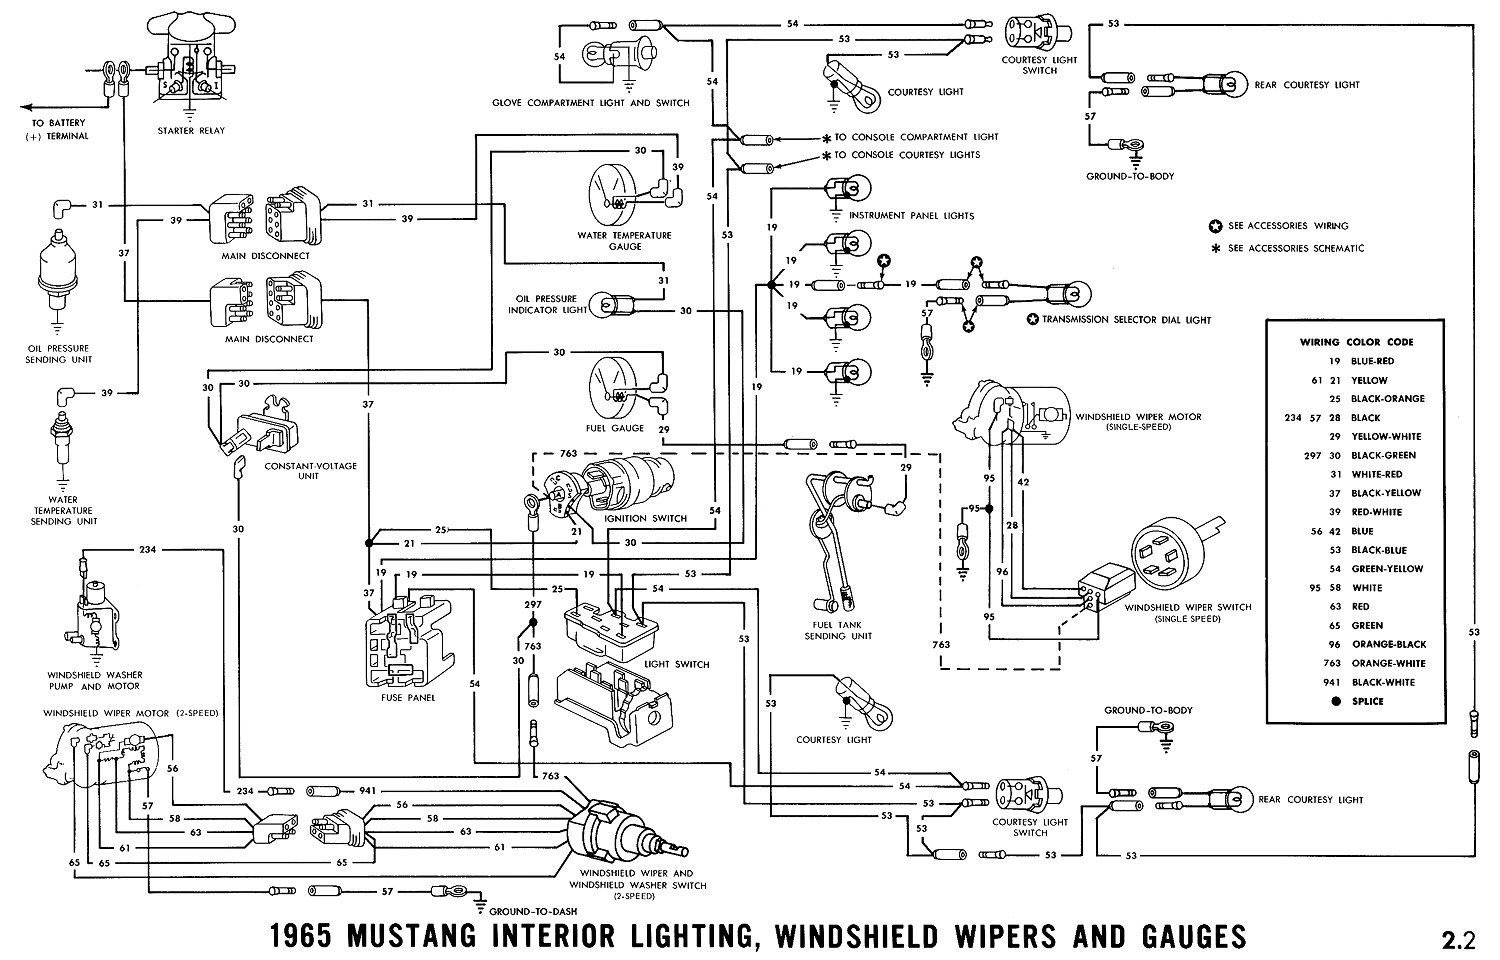 1965g 1965 mustang wiring diagrams average joe restoration 1988 Mustang GT Trunk Latch at n-0.co